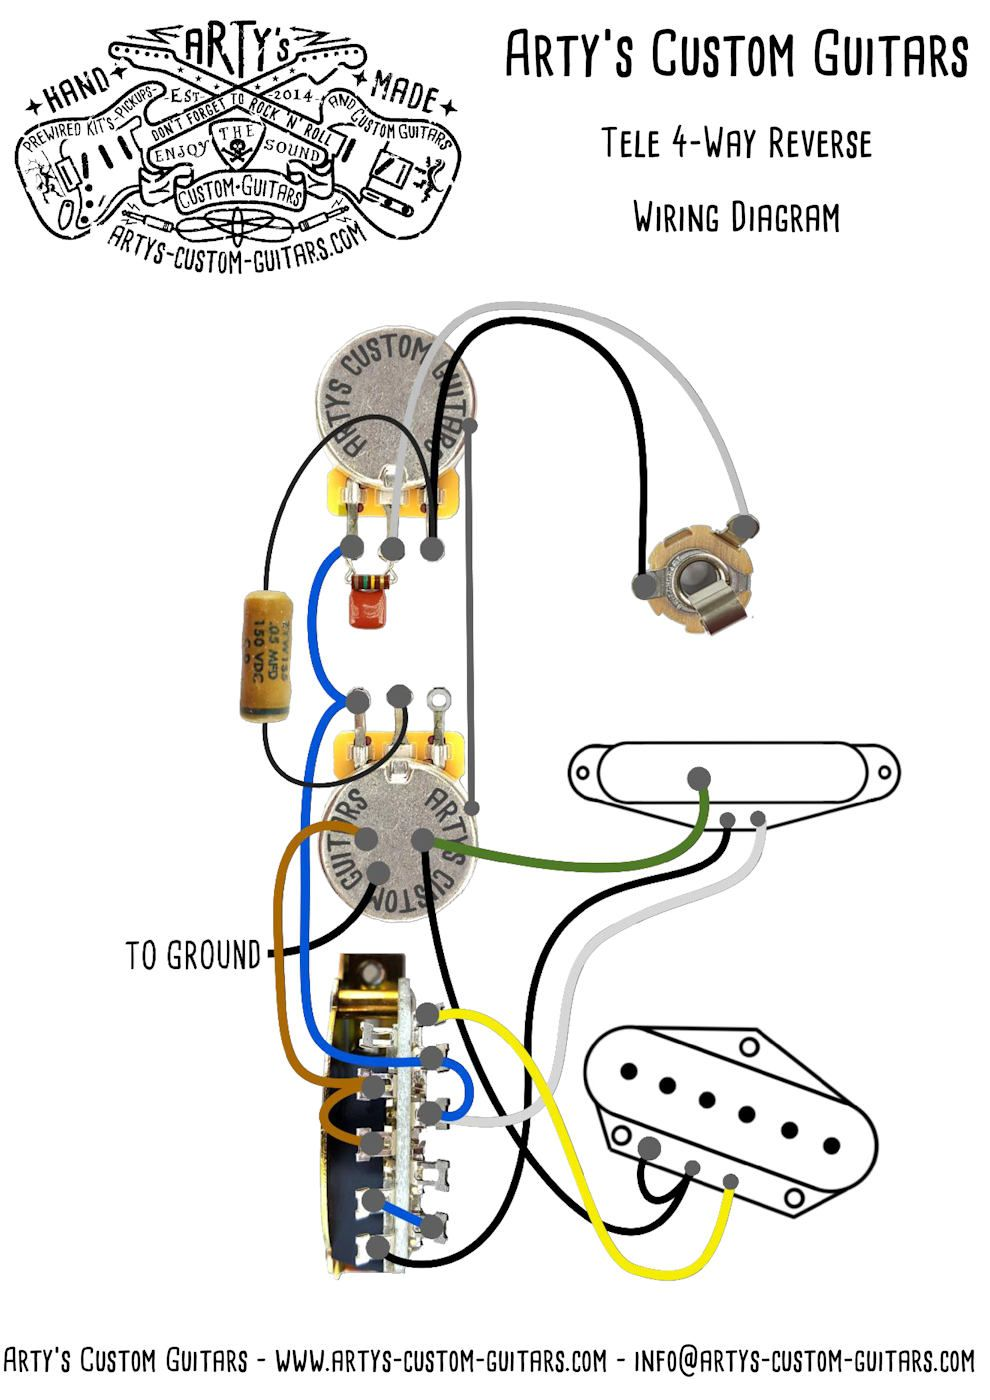 telecaster wiring diagram 3 way reverse www artys custom guitars com [ 990 x 1400 Pixel ]